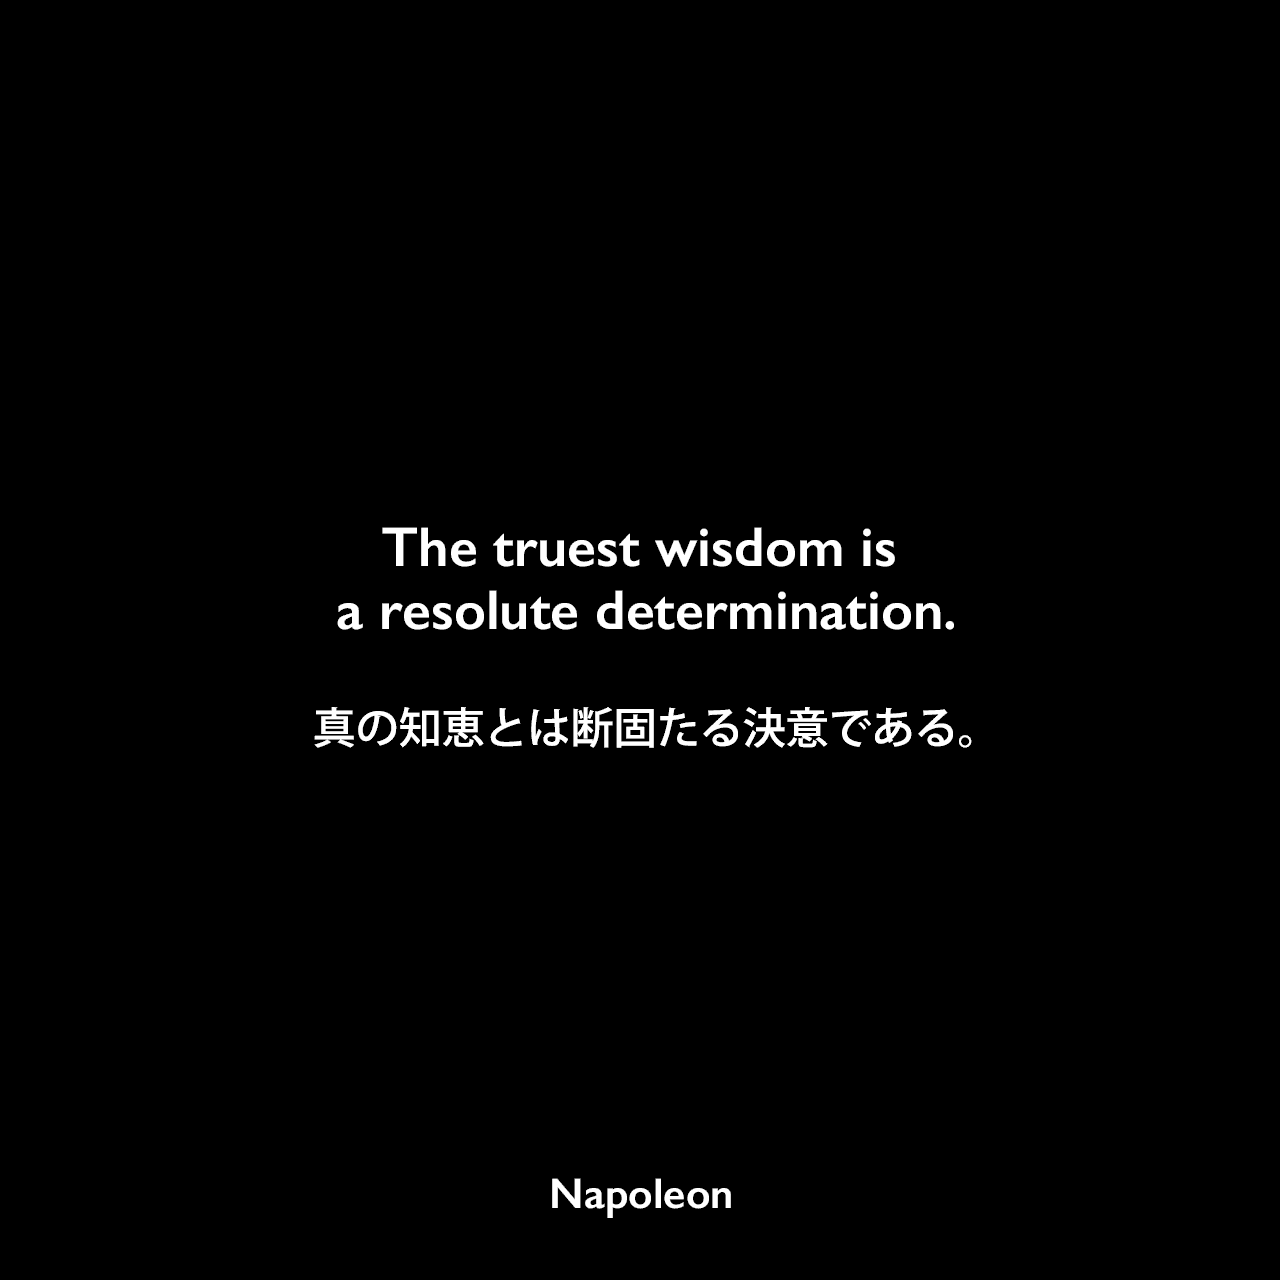 The truest wisdom is a resolute determination.真の知恵とは断固たる決意である。Napoleon